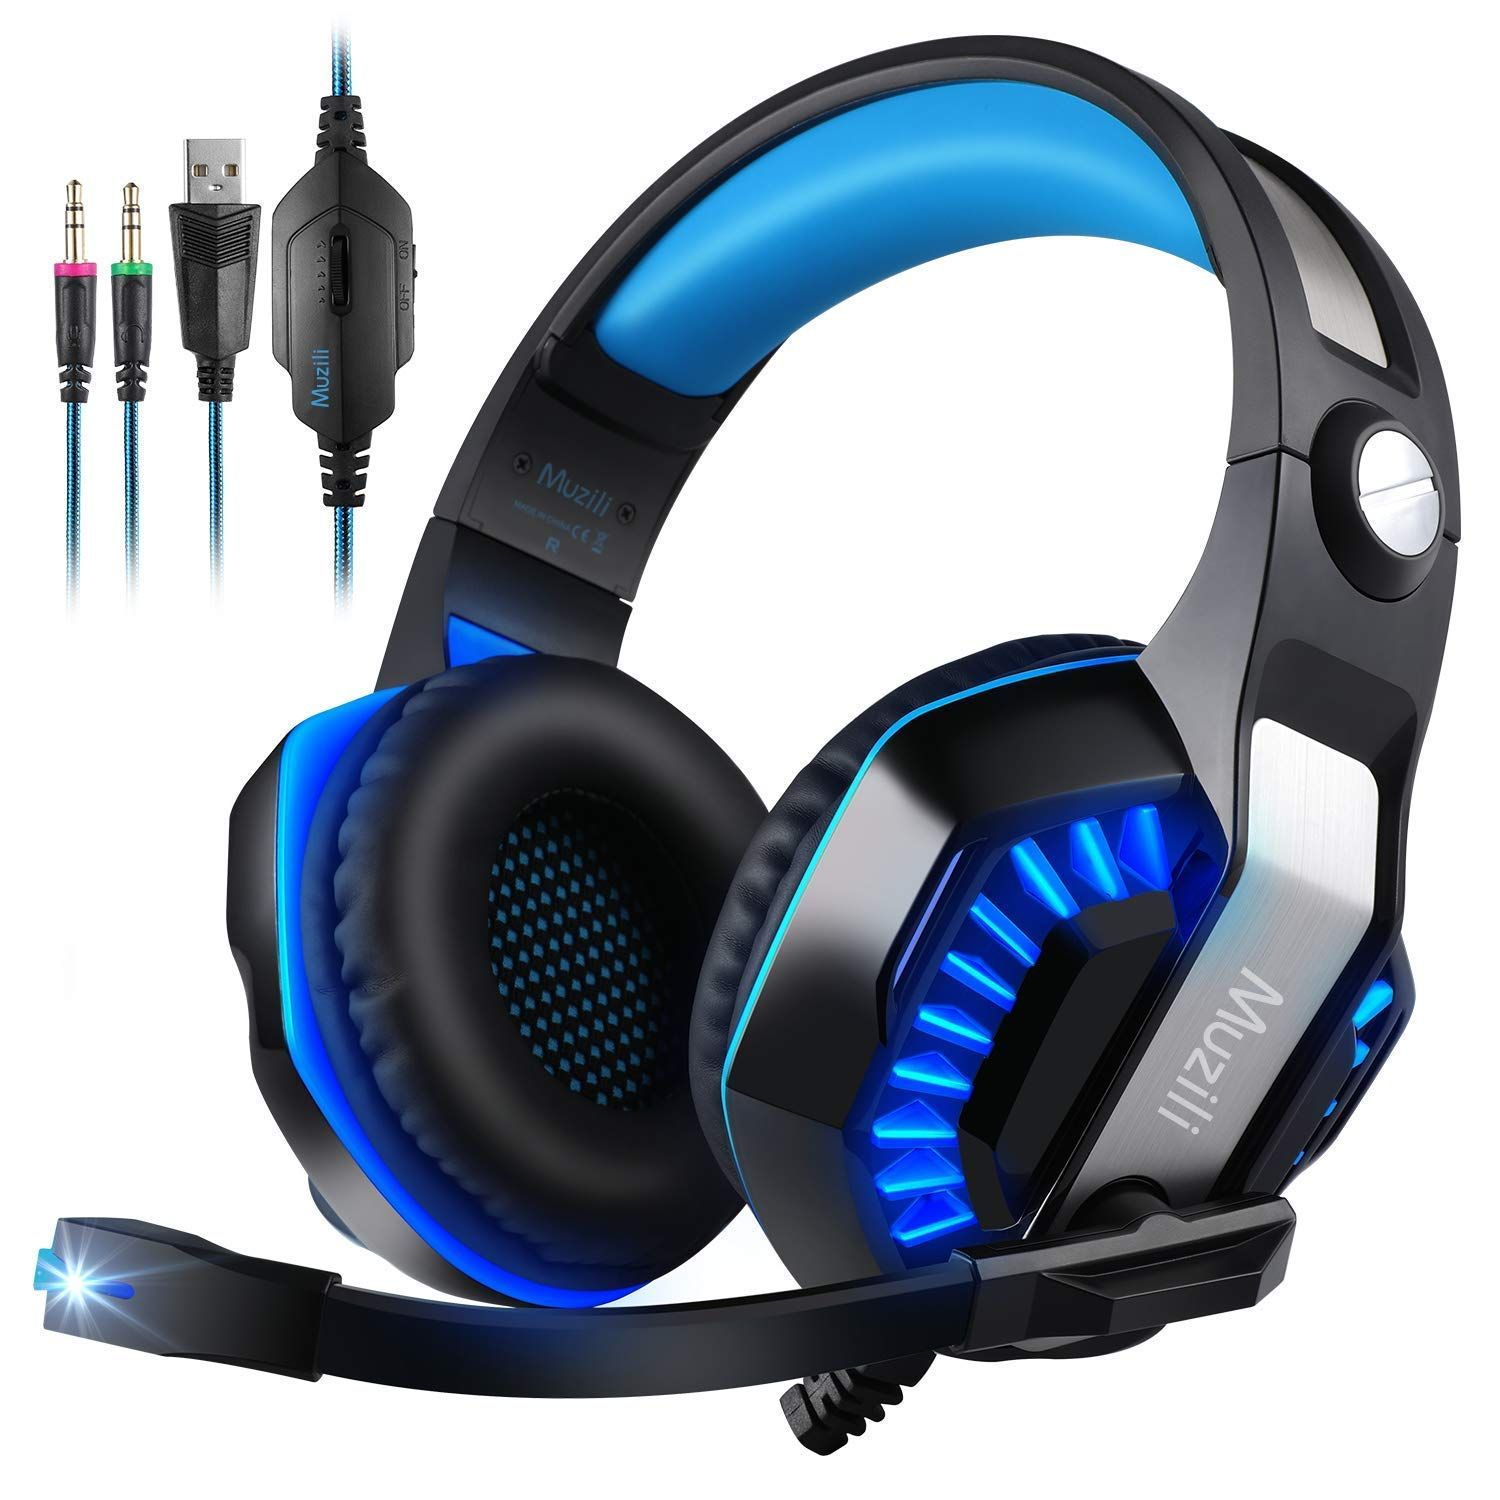 Muzili Gaming Headset 7 1 Stereo Gaming Headphone For Pc Ps4 Xbox One Ipad Mobile Phone Noise Cancell Gaming Headphones Gaming Headset Noise Cancelling Headset